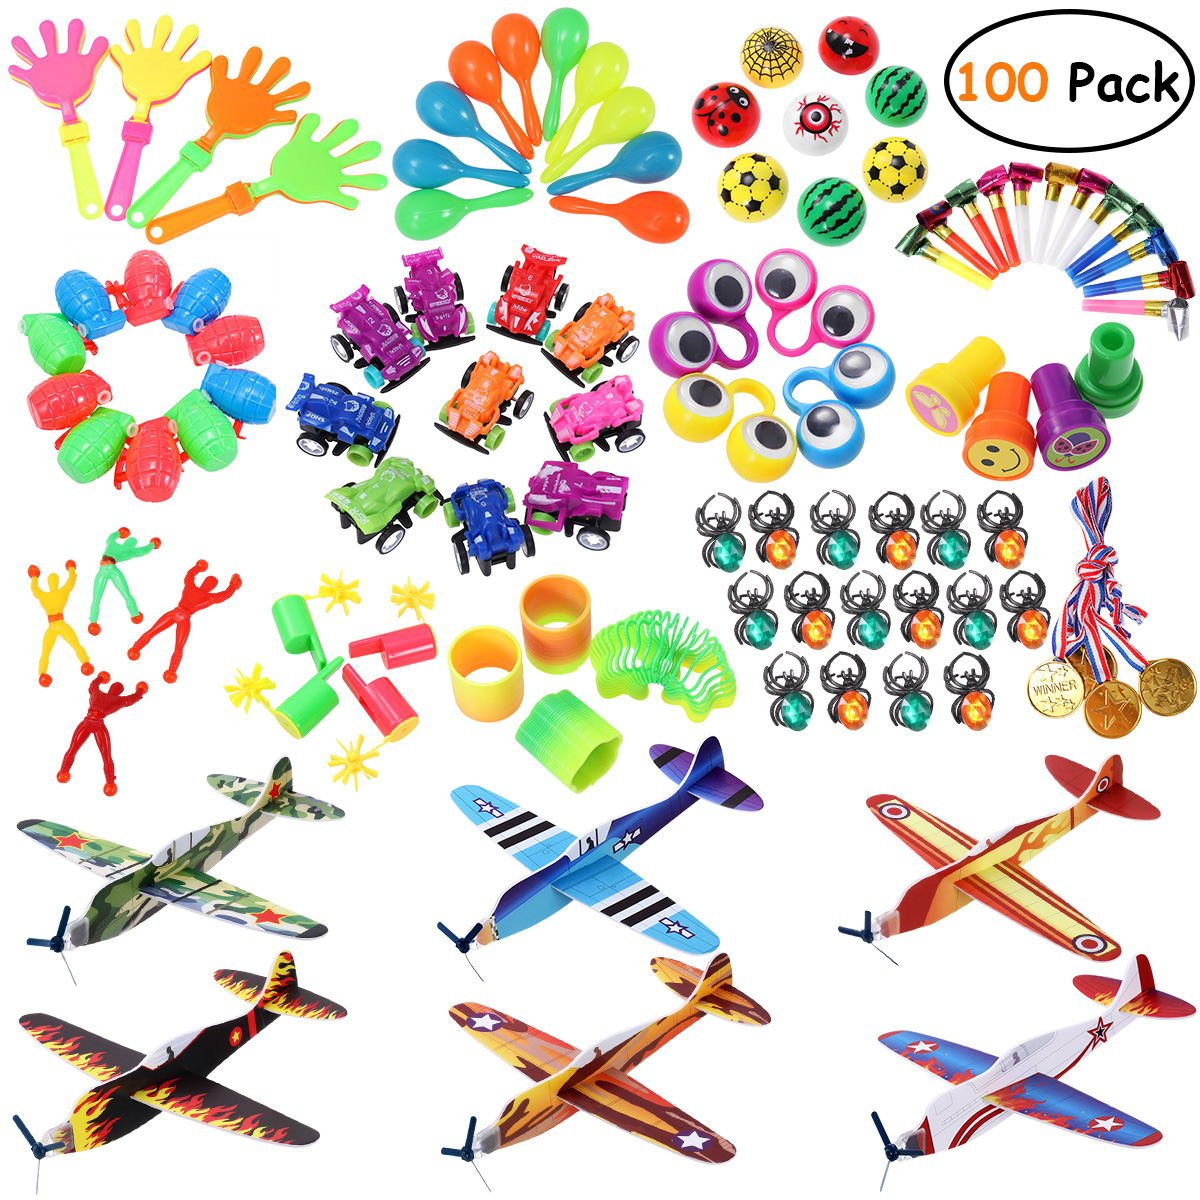 iBaseToy Party Prizes, 100PCS Party Favors Toy Assortment Kids Birthday Party, Carnival Prizes, School Classroom Rewards, Pinata Fillers, Party Toys Glider Planes, Medals, Party Noise Maker